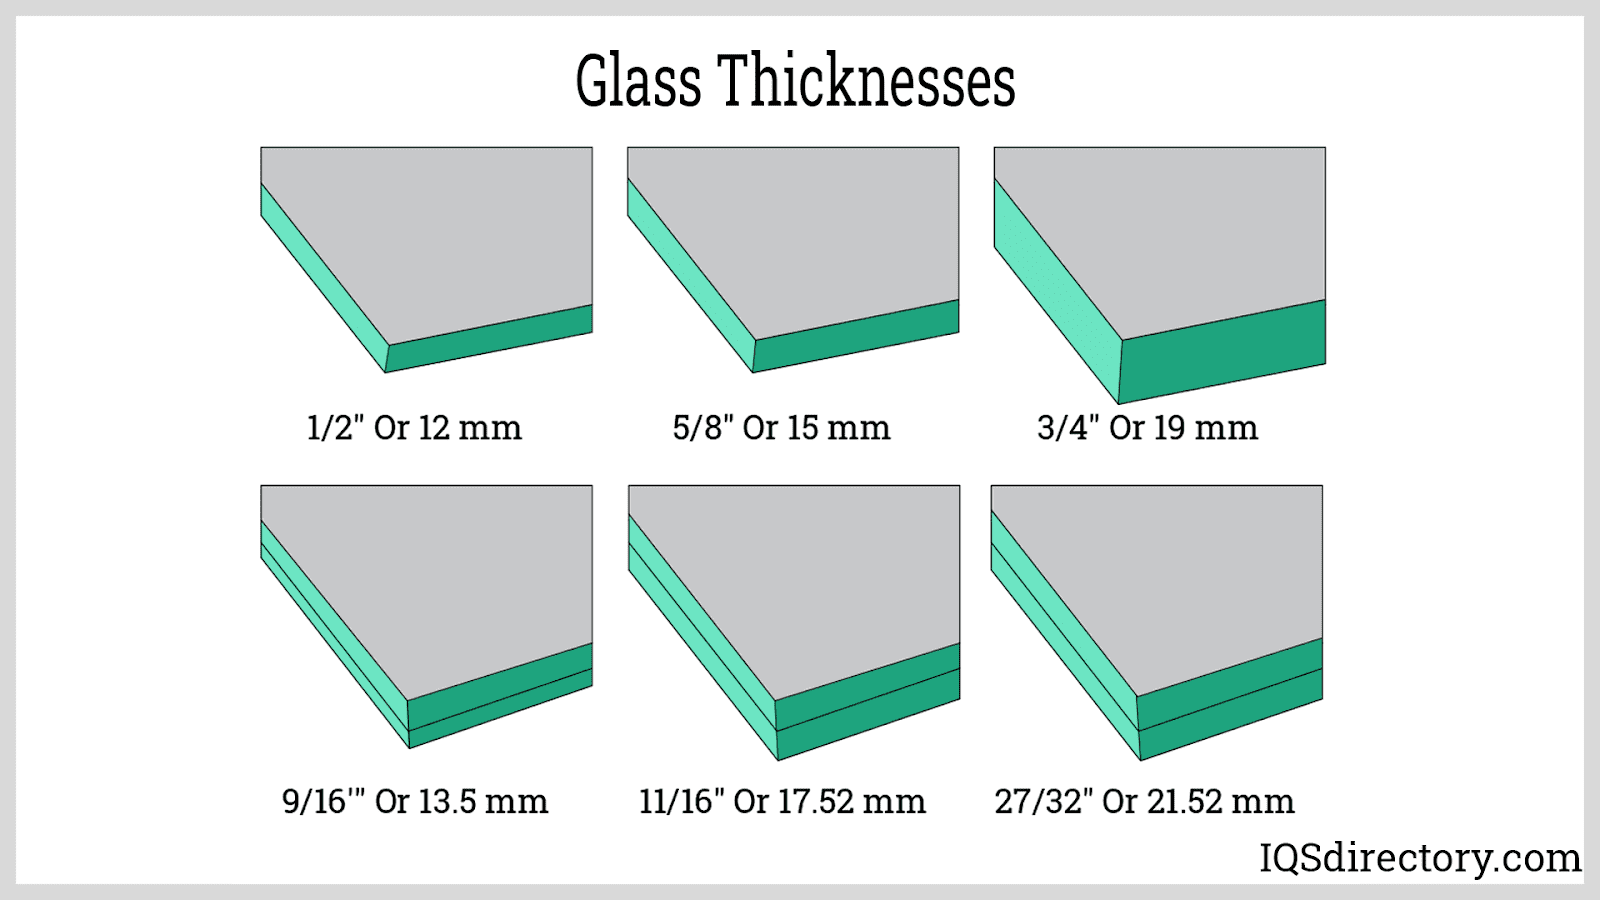 Glass Thicknesses